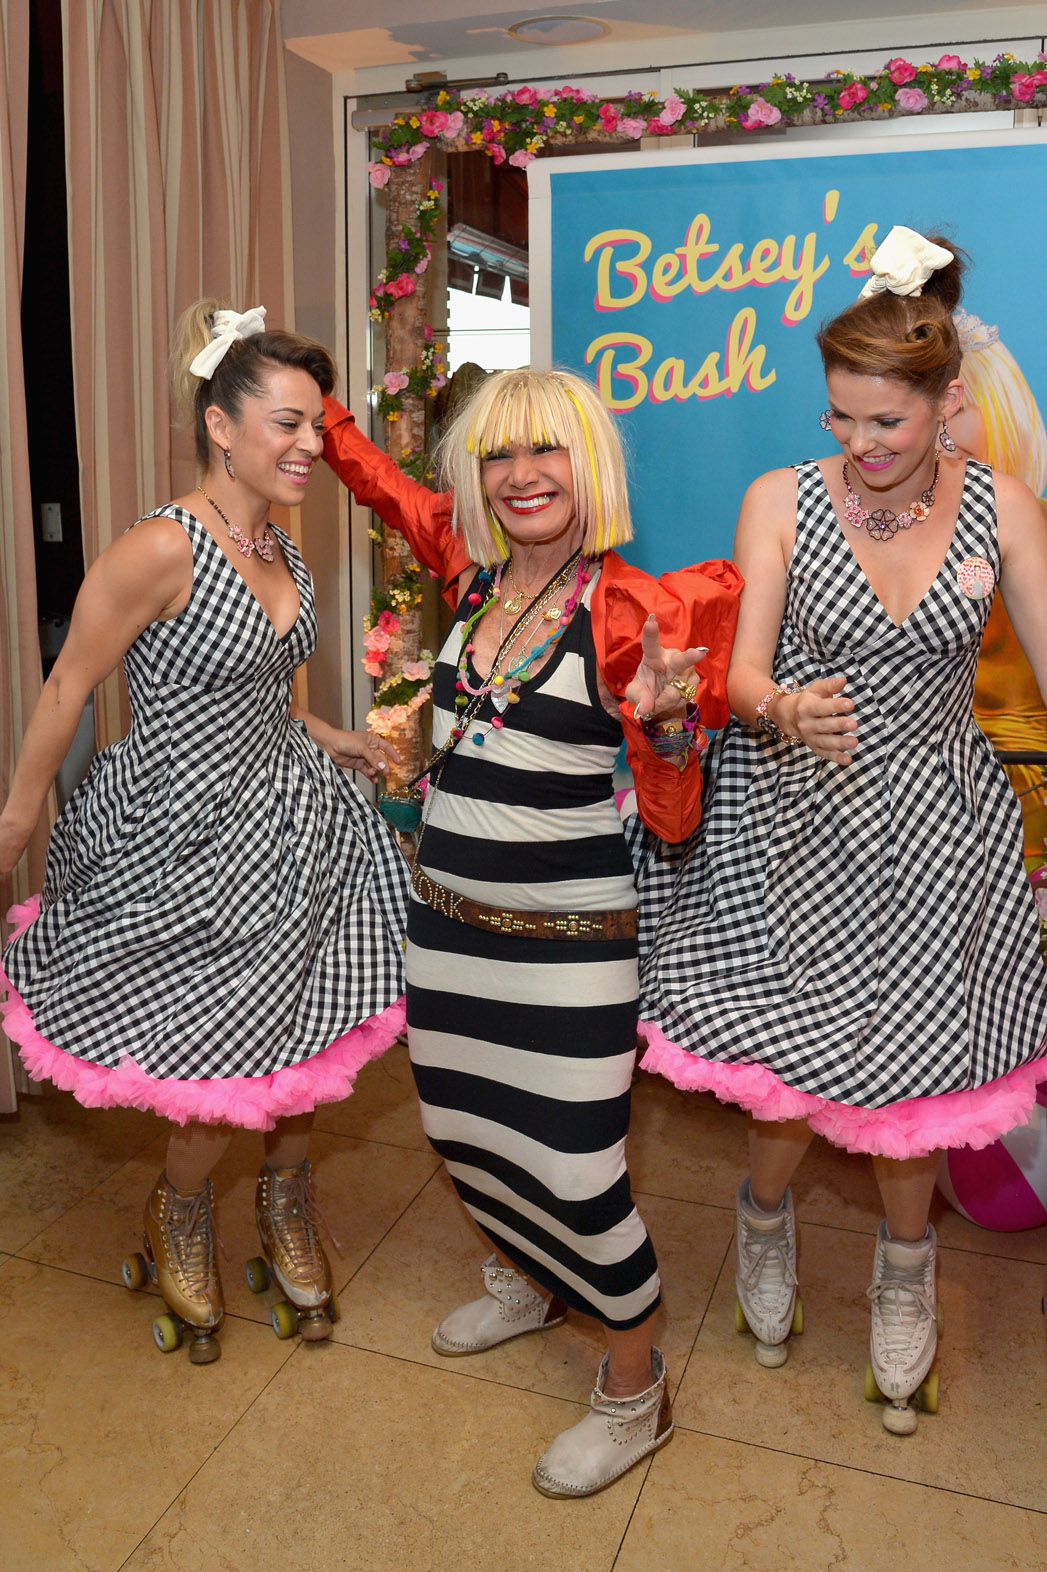 Betsey Johnson's Pool Party At Sunset Tower GETTY - P 2016